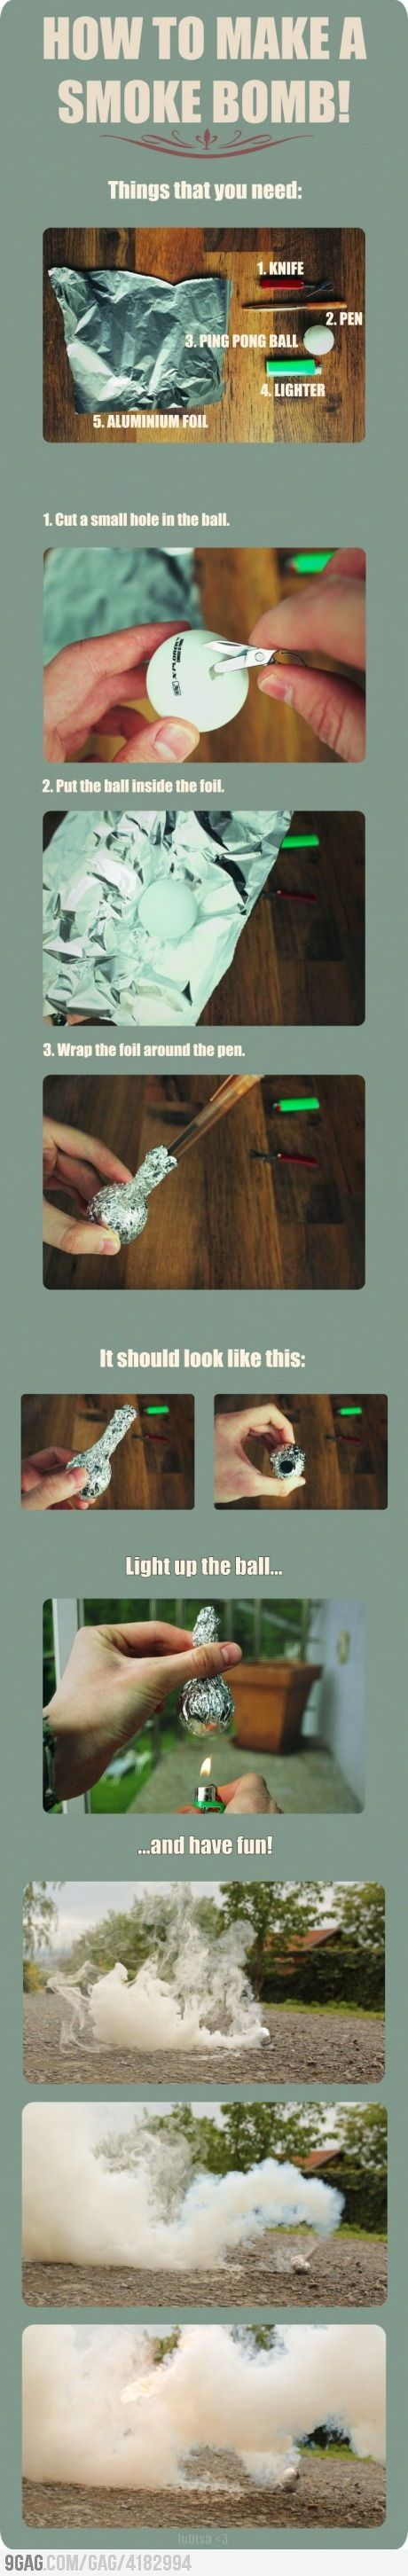 Handmade Smoke Bomb DIY Projects - this can't work! can it?